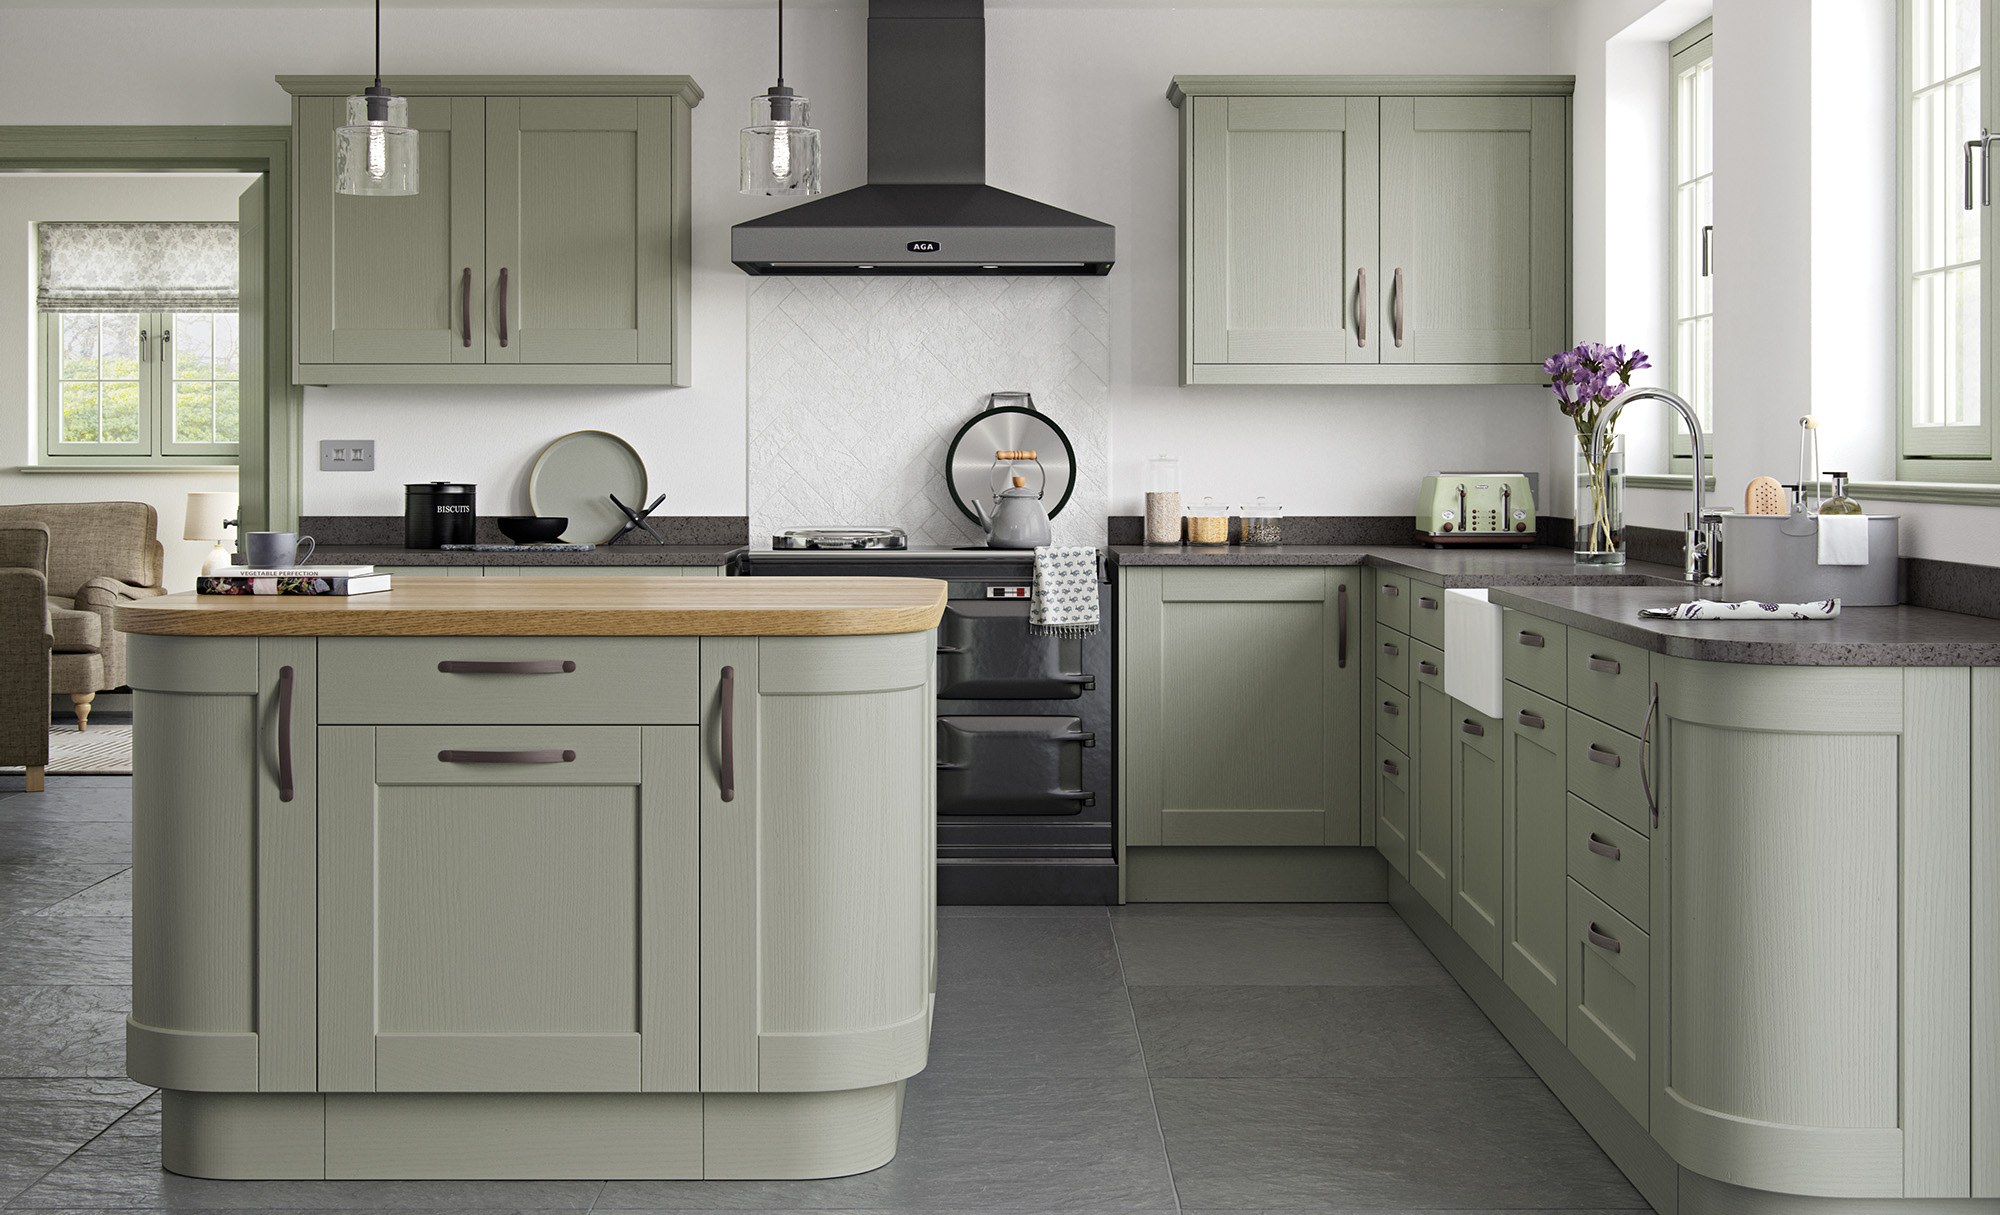 kensington shaker style kitchen in painted sage green - Sage Kitchen